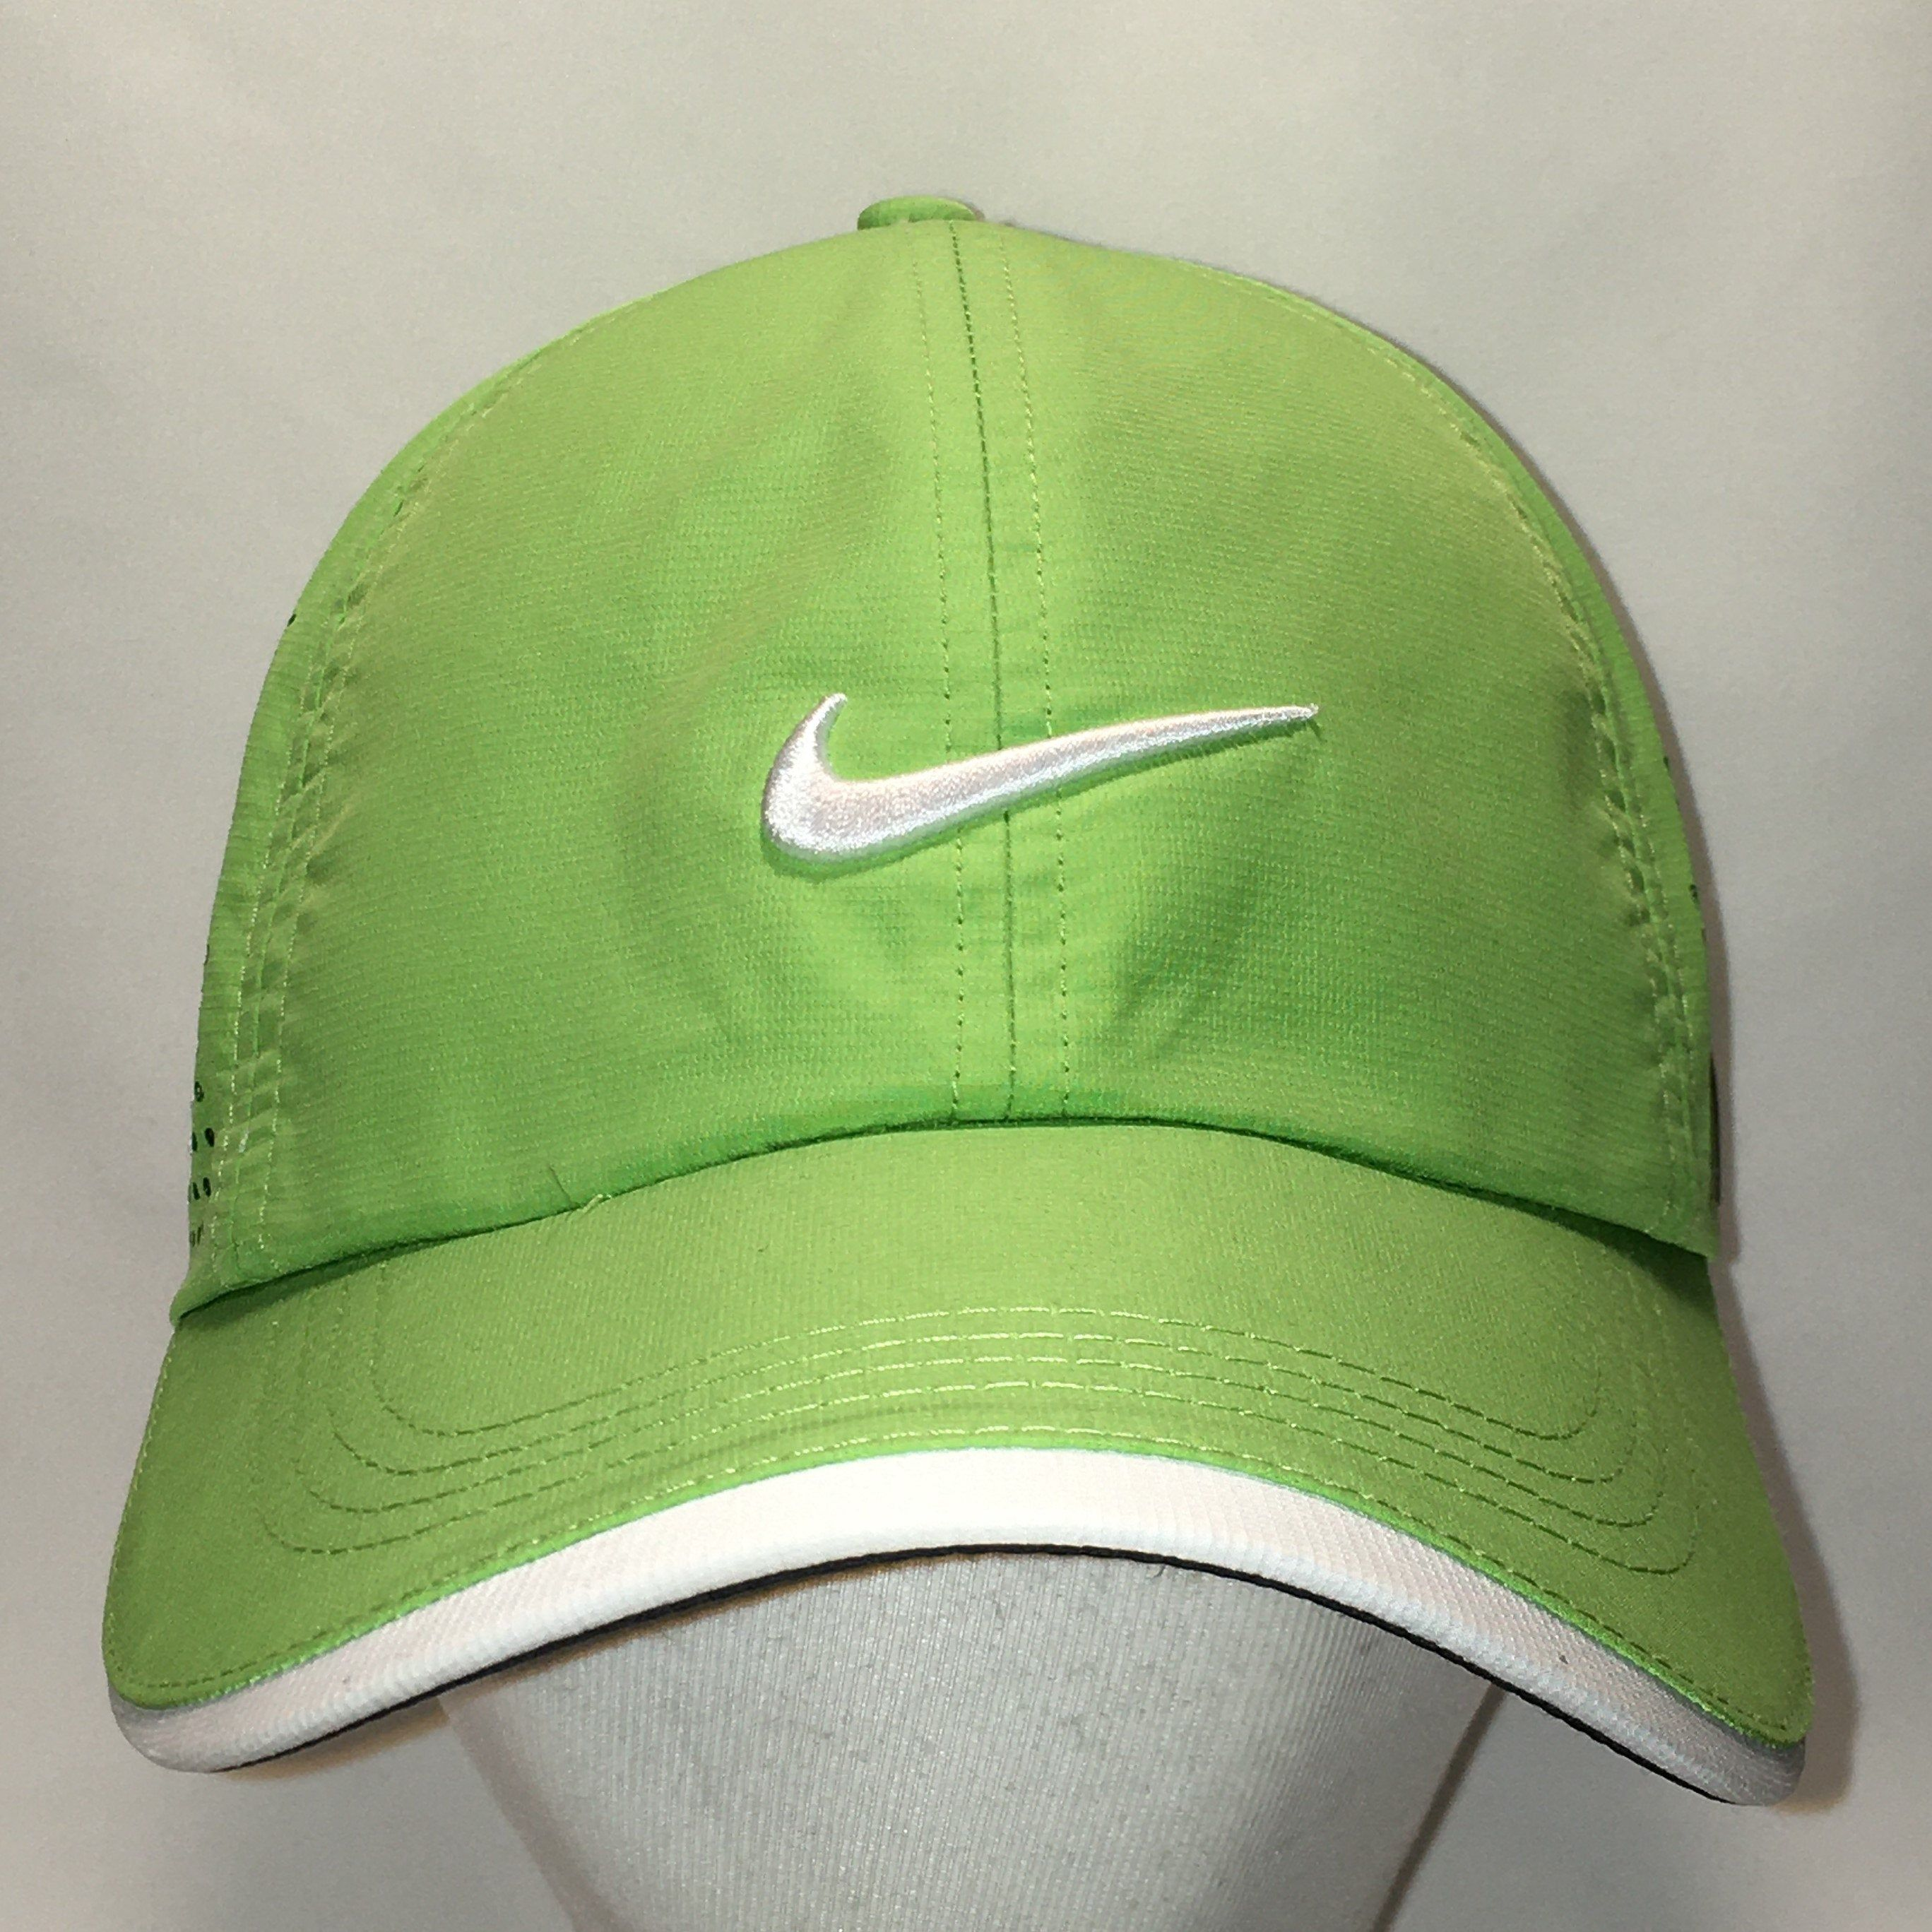 Golf Hat Nike Baseball Cap Dad Hats Lime Green White Swoosh Polyester Breathable Lightweight Sports Caps Cool Gifts For Men T85 Jl0095 Dad Hats Golf Hats Baseball Cap